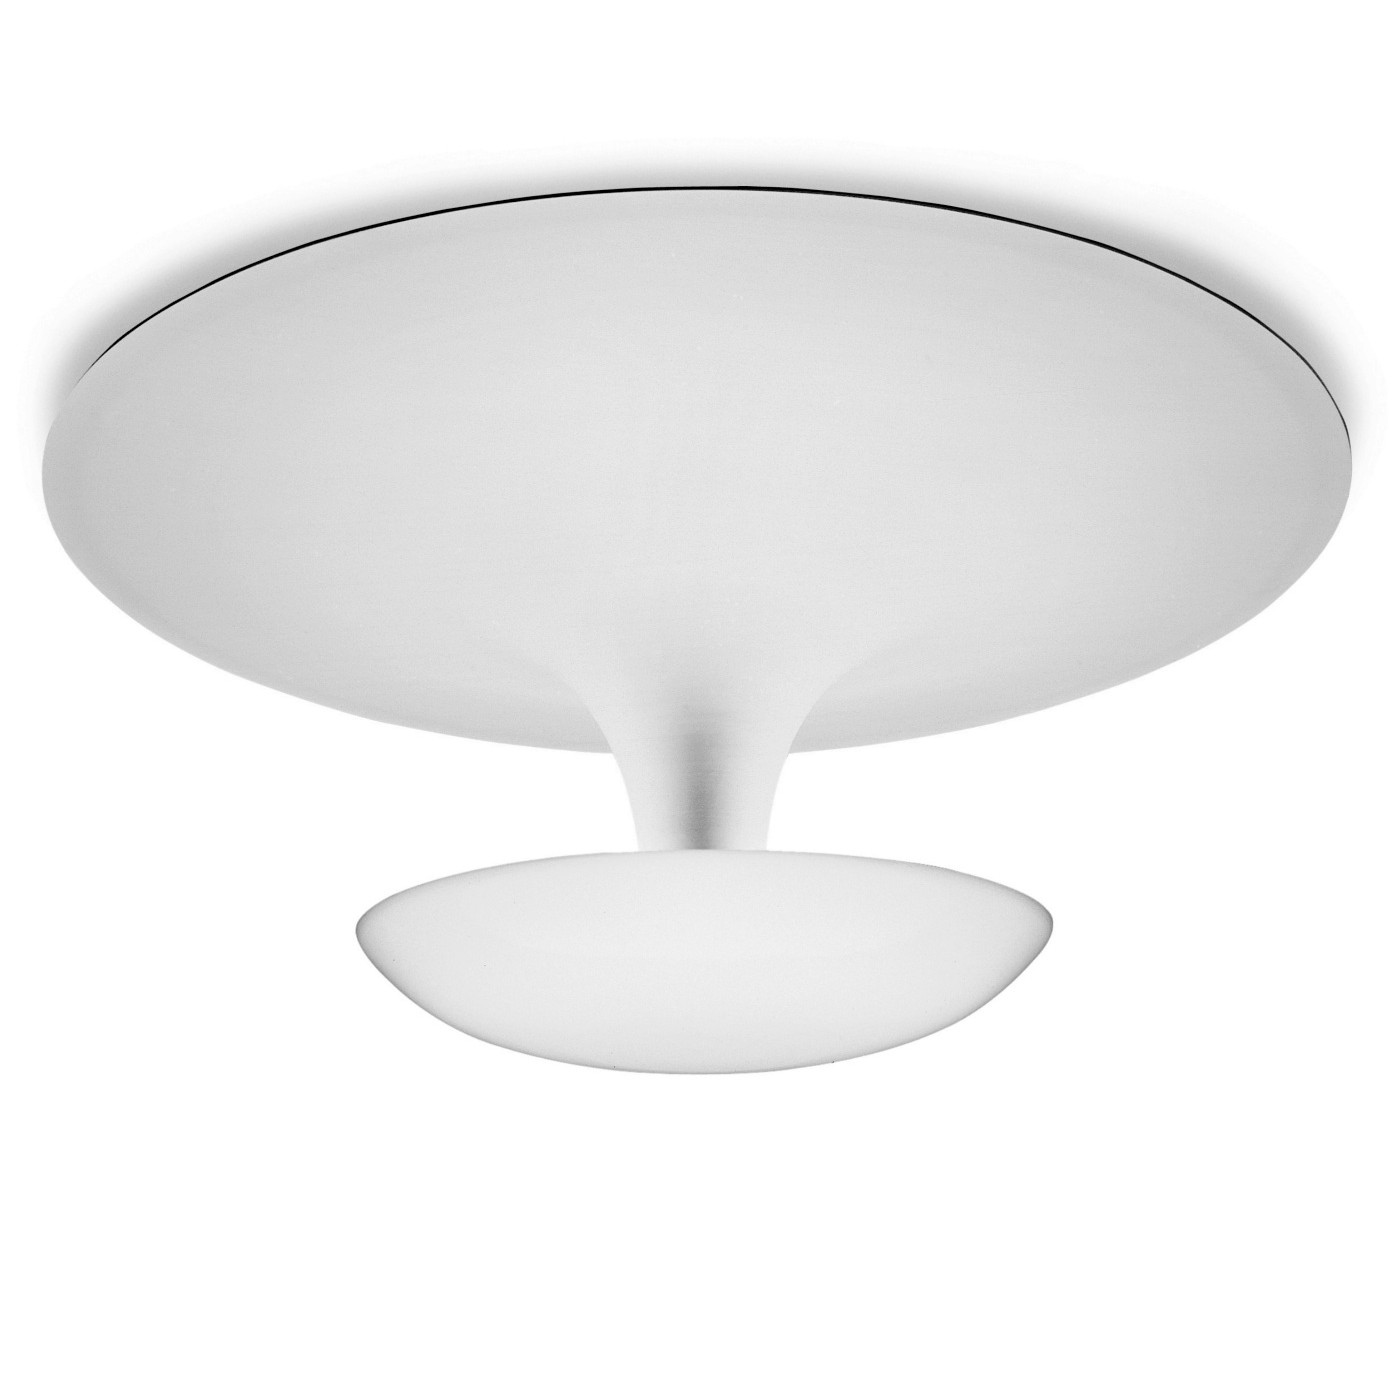 Vibia Funnel 2013 Wall and Ceiling Light